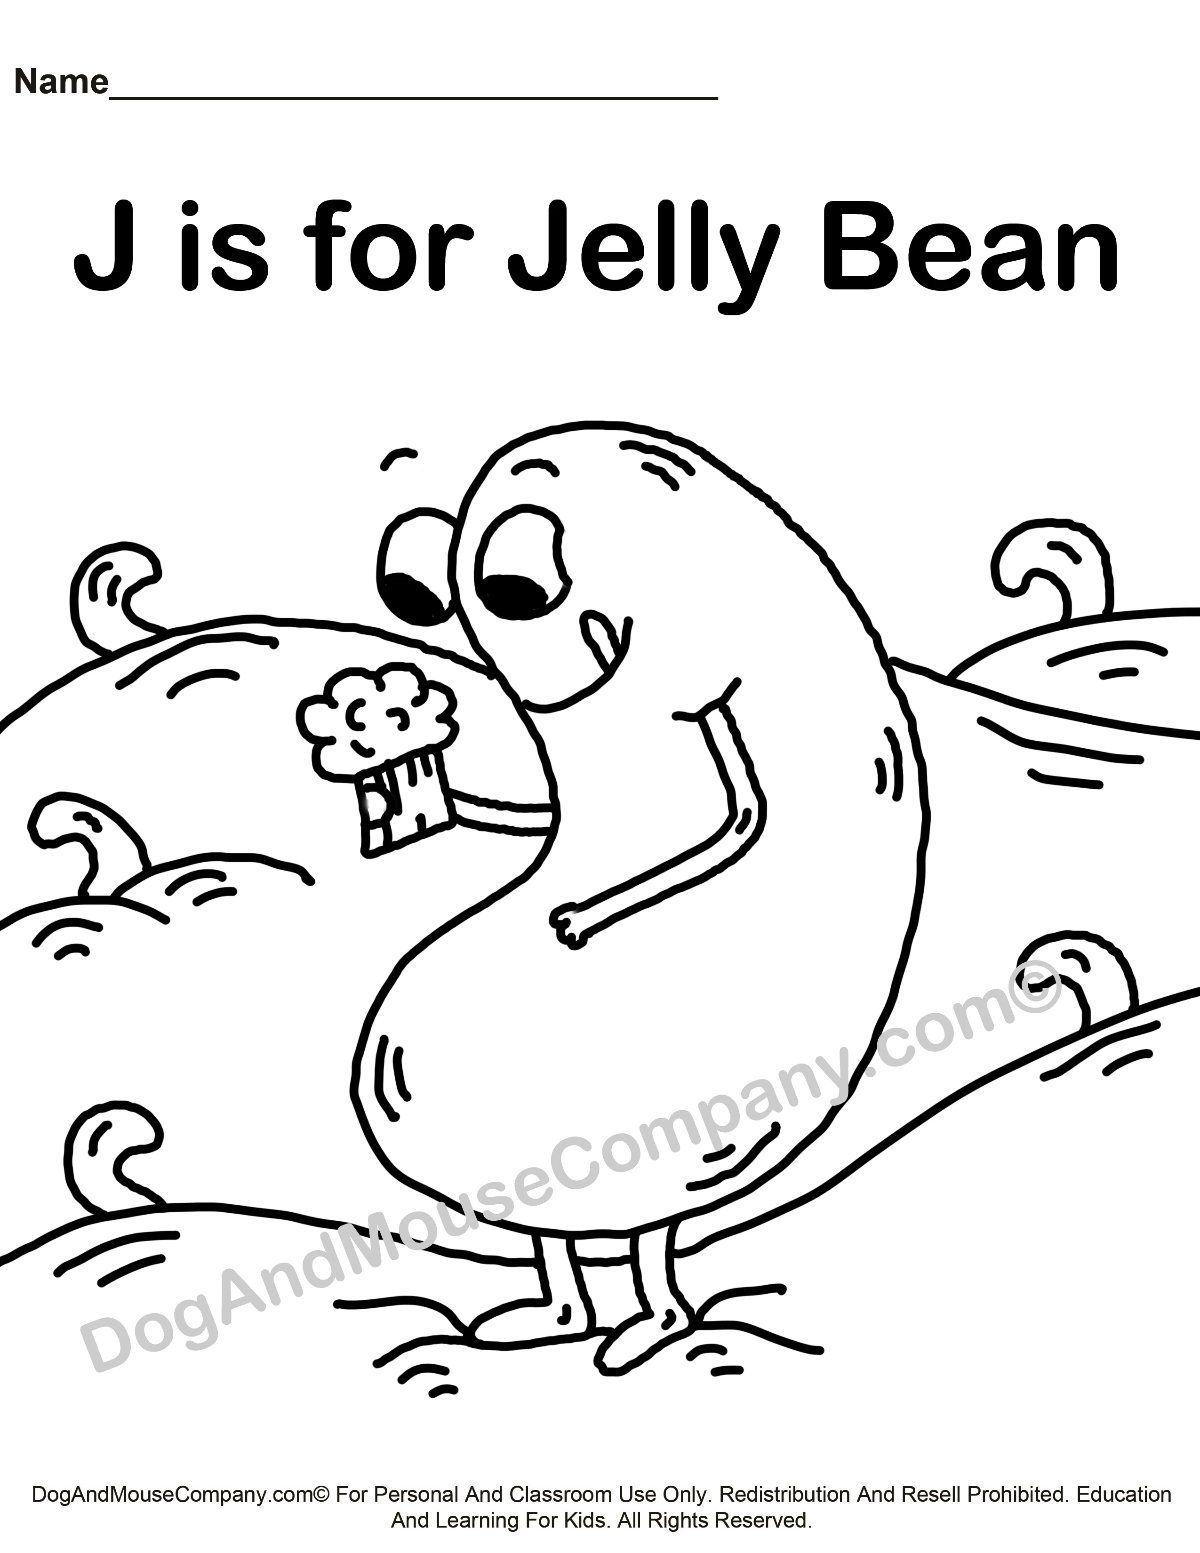 J Is For Jelly Bean Coloring Page